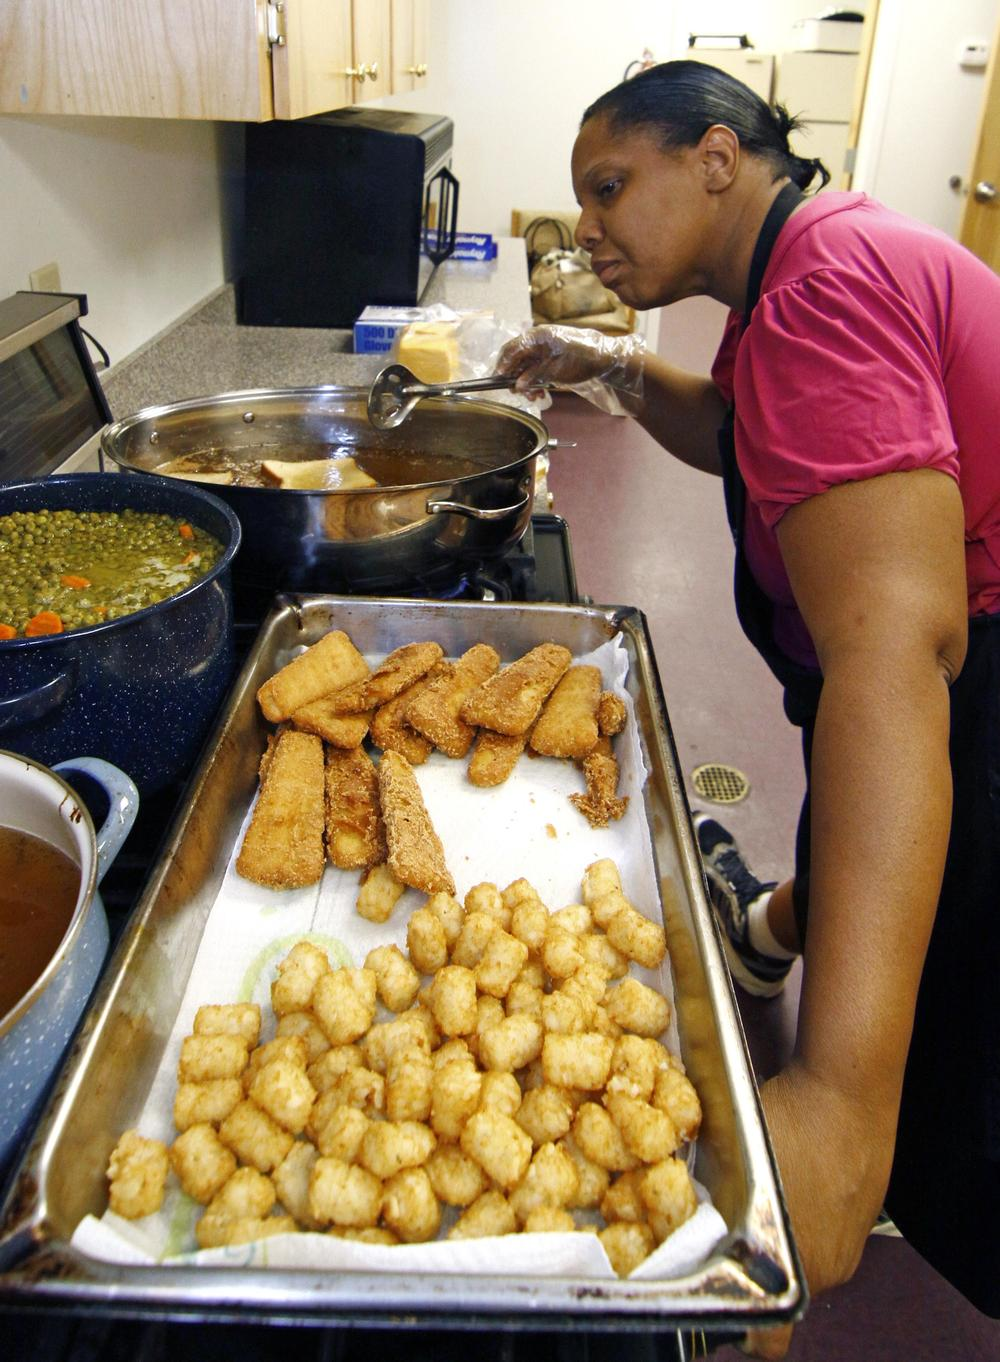 Earnestine Nelson, chief cook for the Alpha and Omega Church's free summer meals program for children and teens, checks the progress of her peas and carrots while frying fish fillets and tater tots for lunch in Jackson, Miss. (AP)